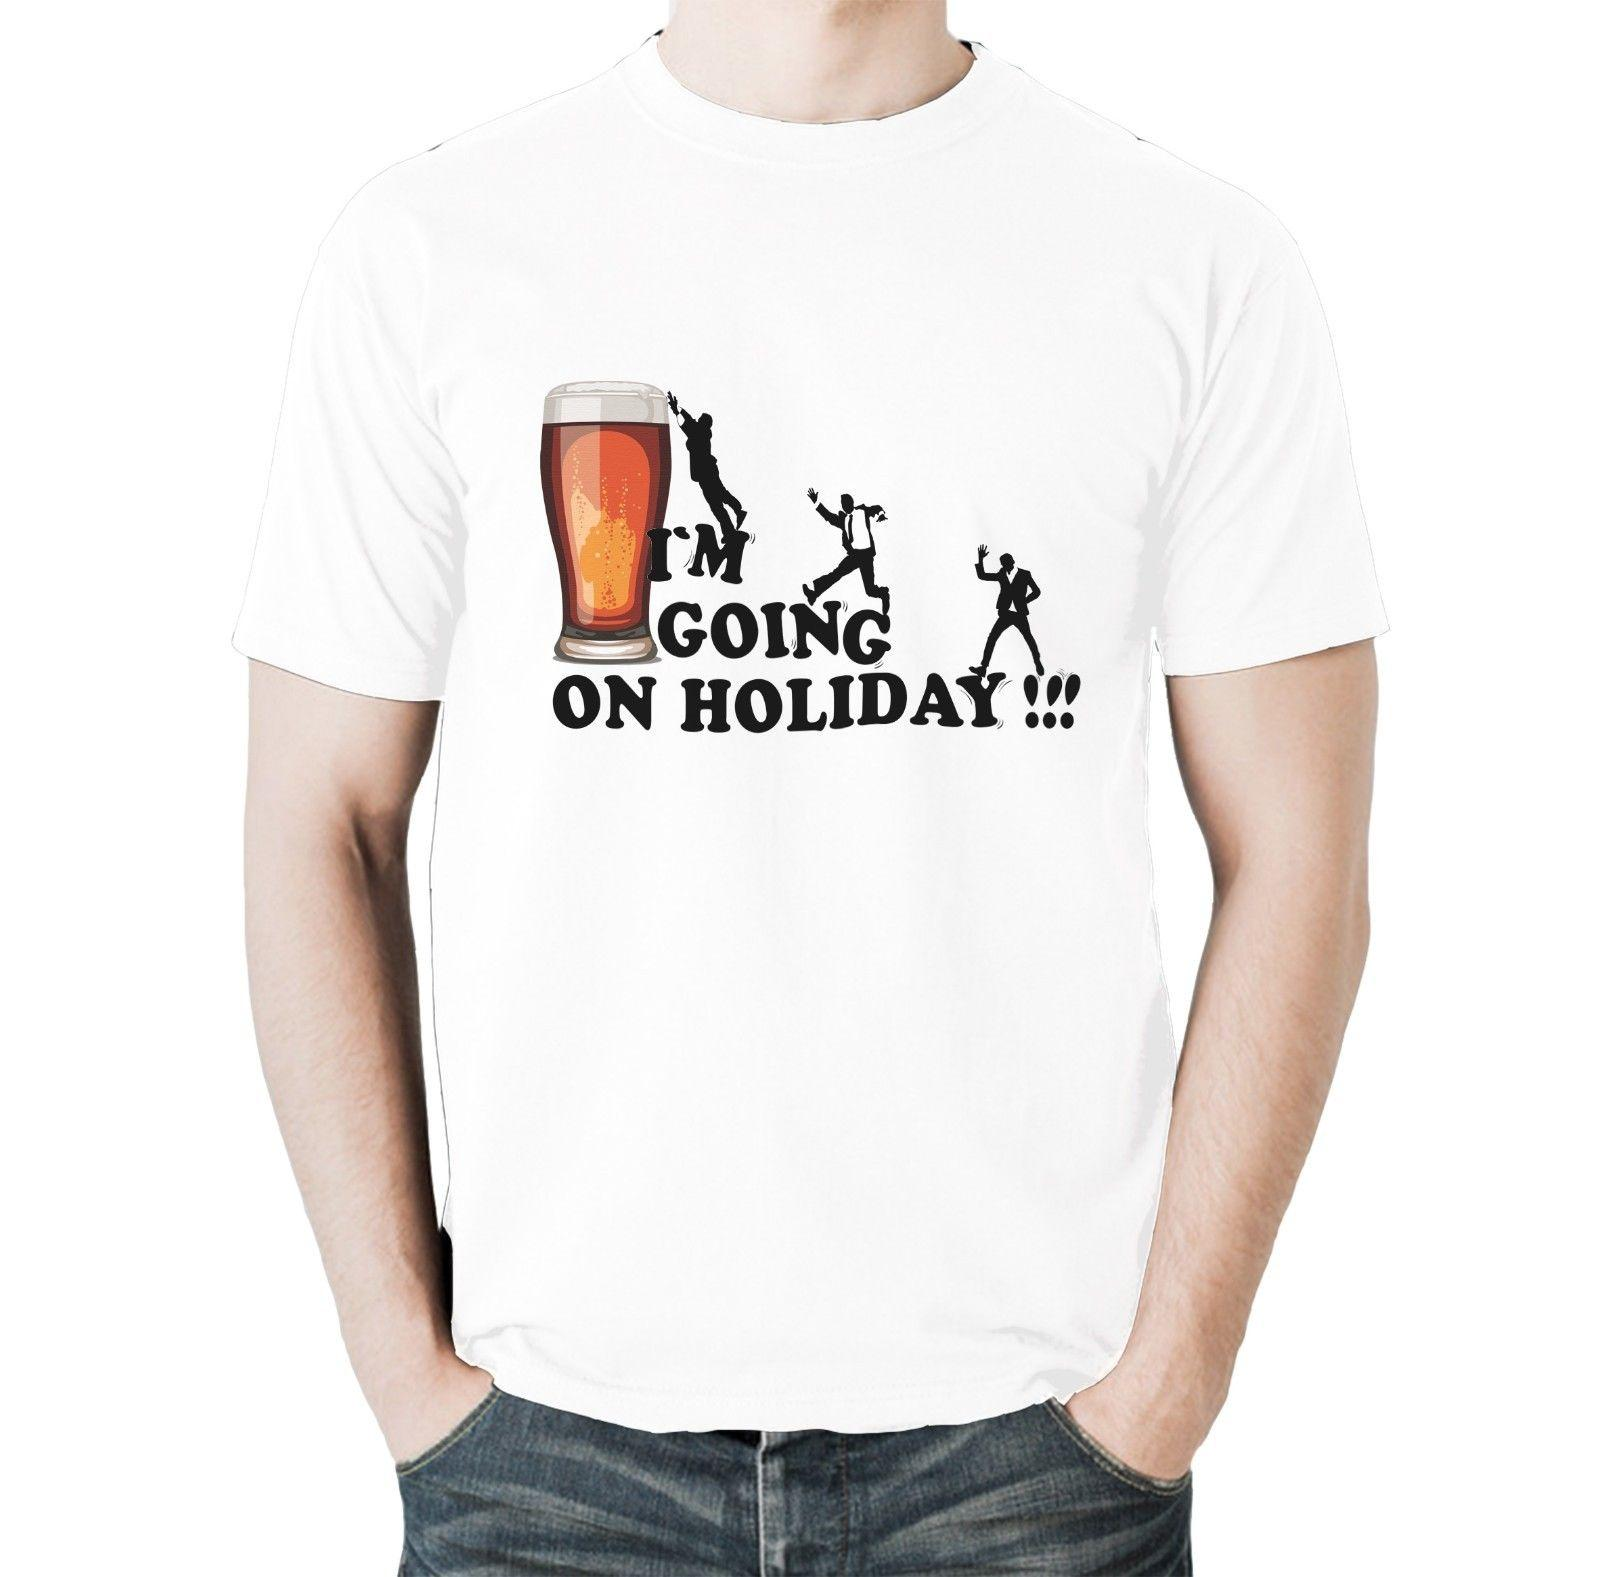 New Funny Drinking T Shirt Im Going On Holiday Birthday Joke Gift Tee Deals Online Shopping Shirts From Designtshirt 1572